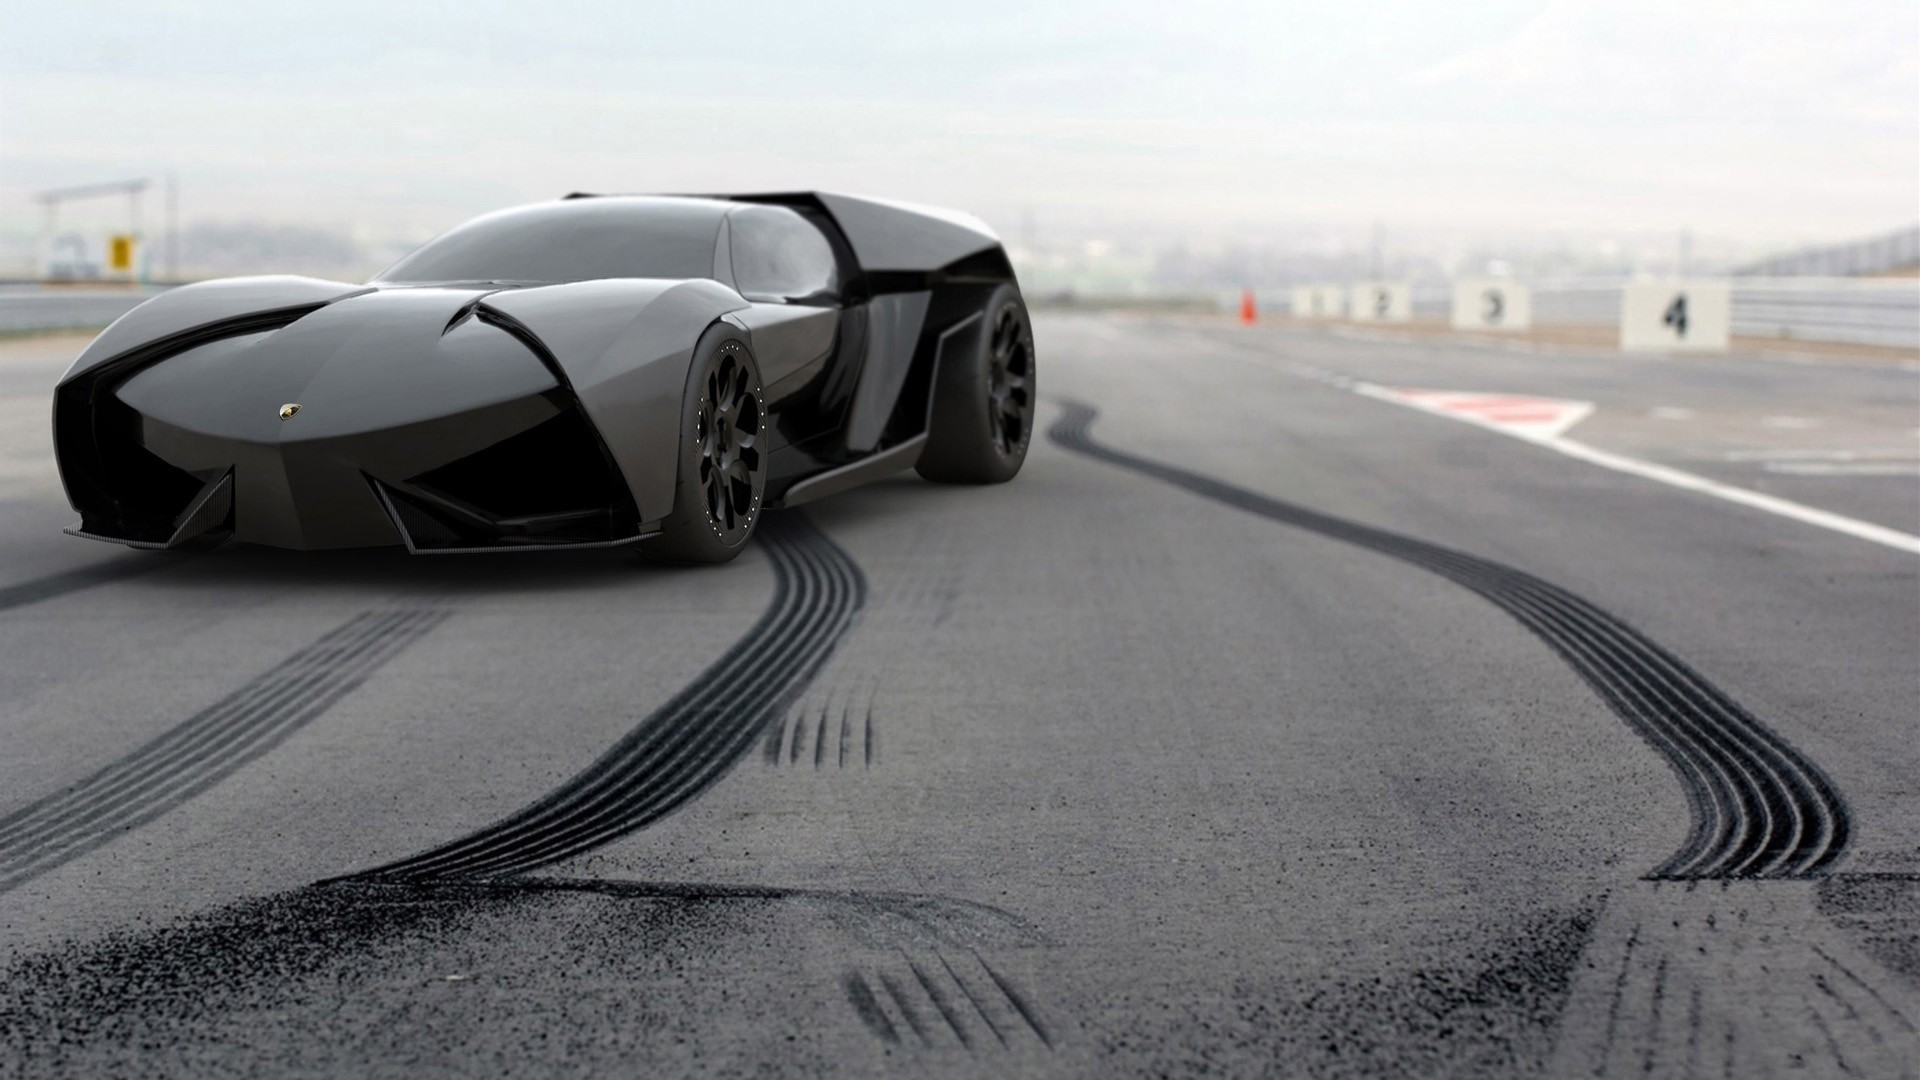 cars concept cars Lamborghini HD Wallpaper